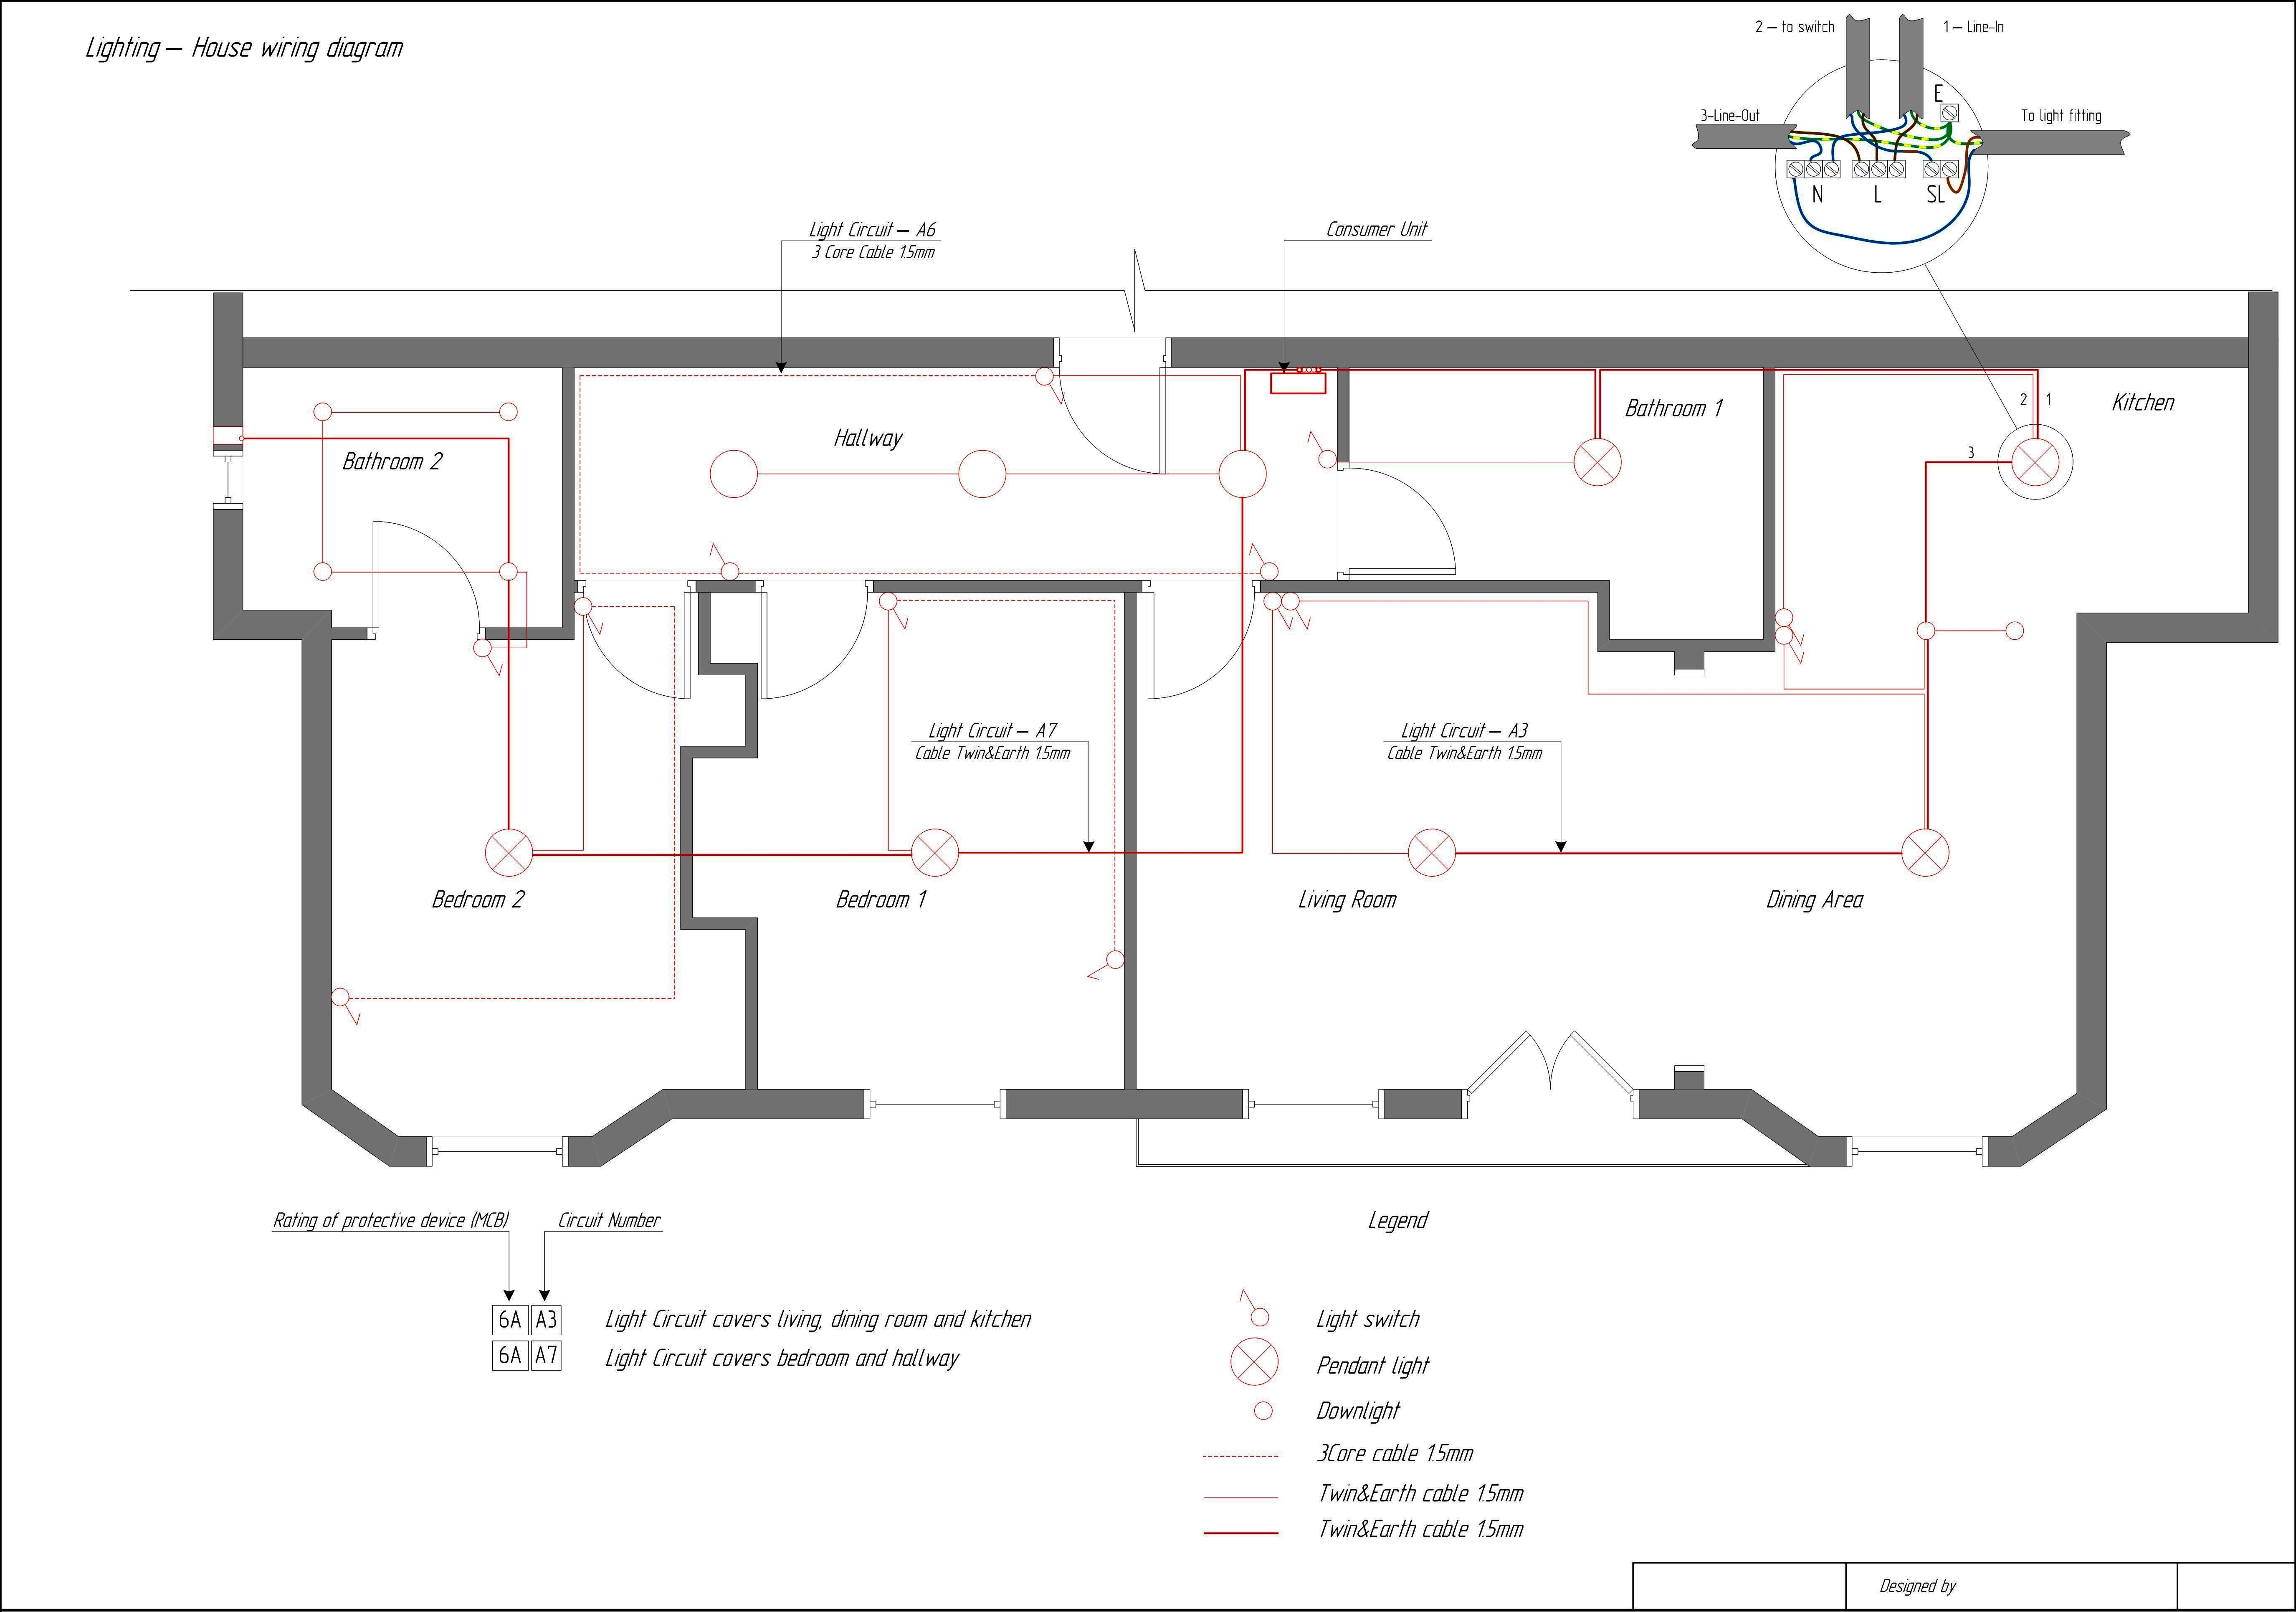 house wiring diagram most monly used diagrams for home wiring in house wiring circuits home wiring